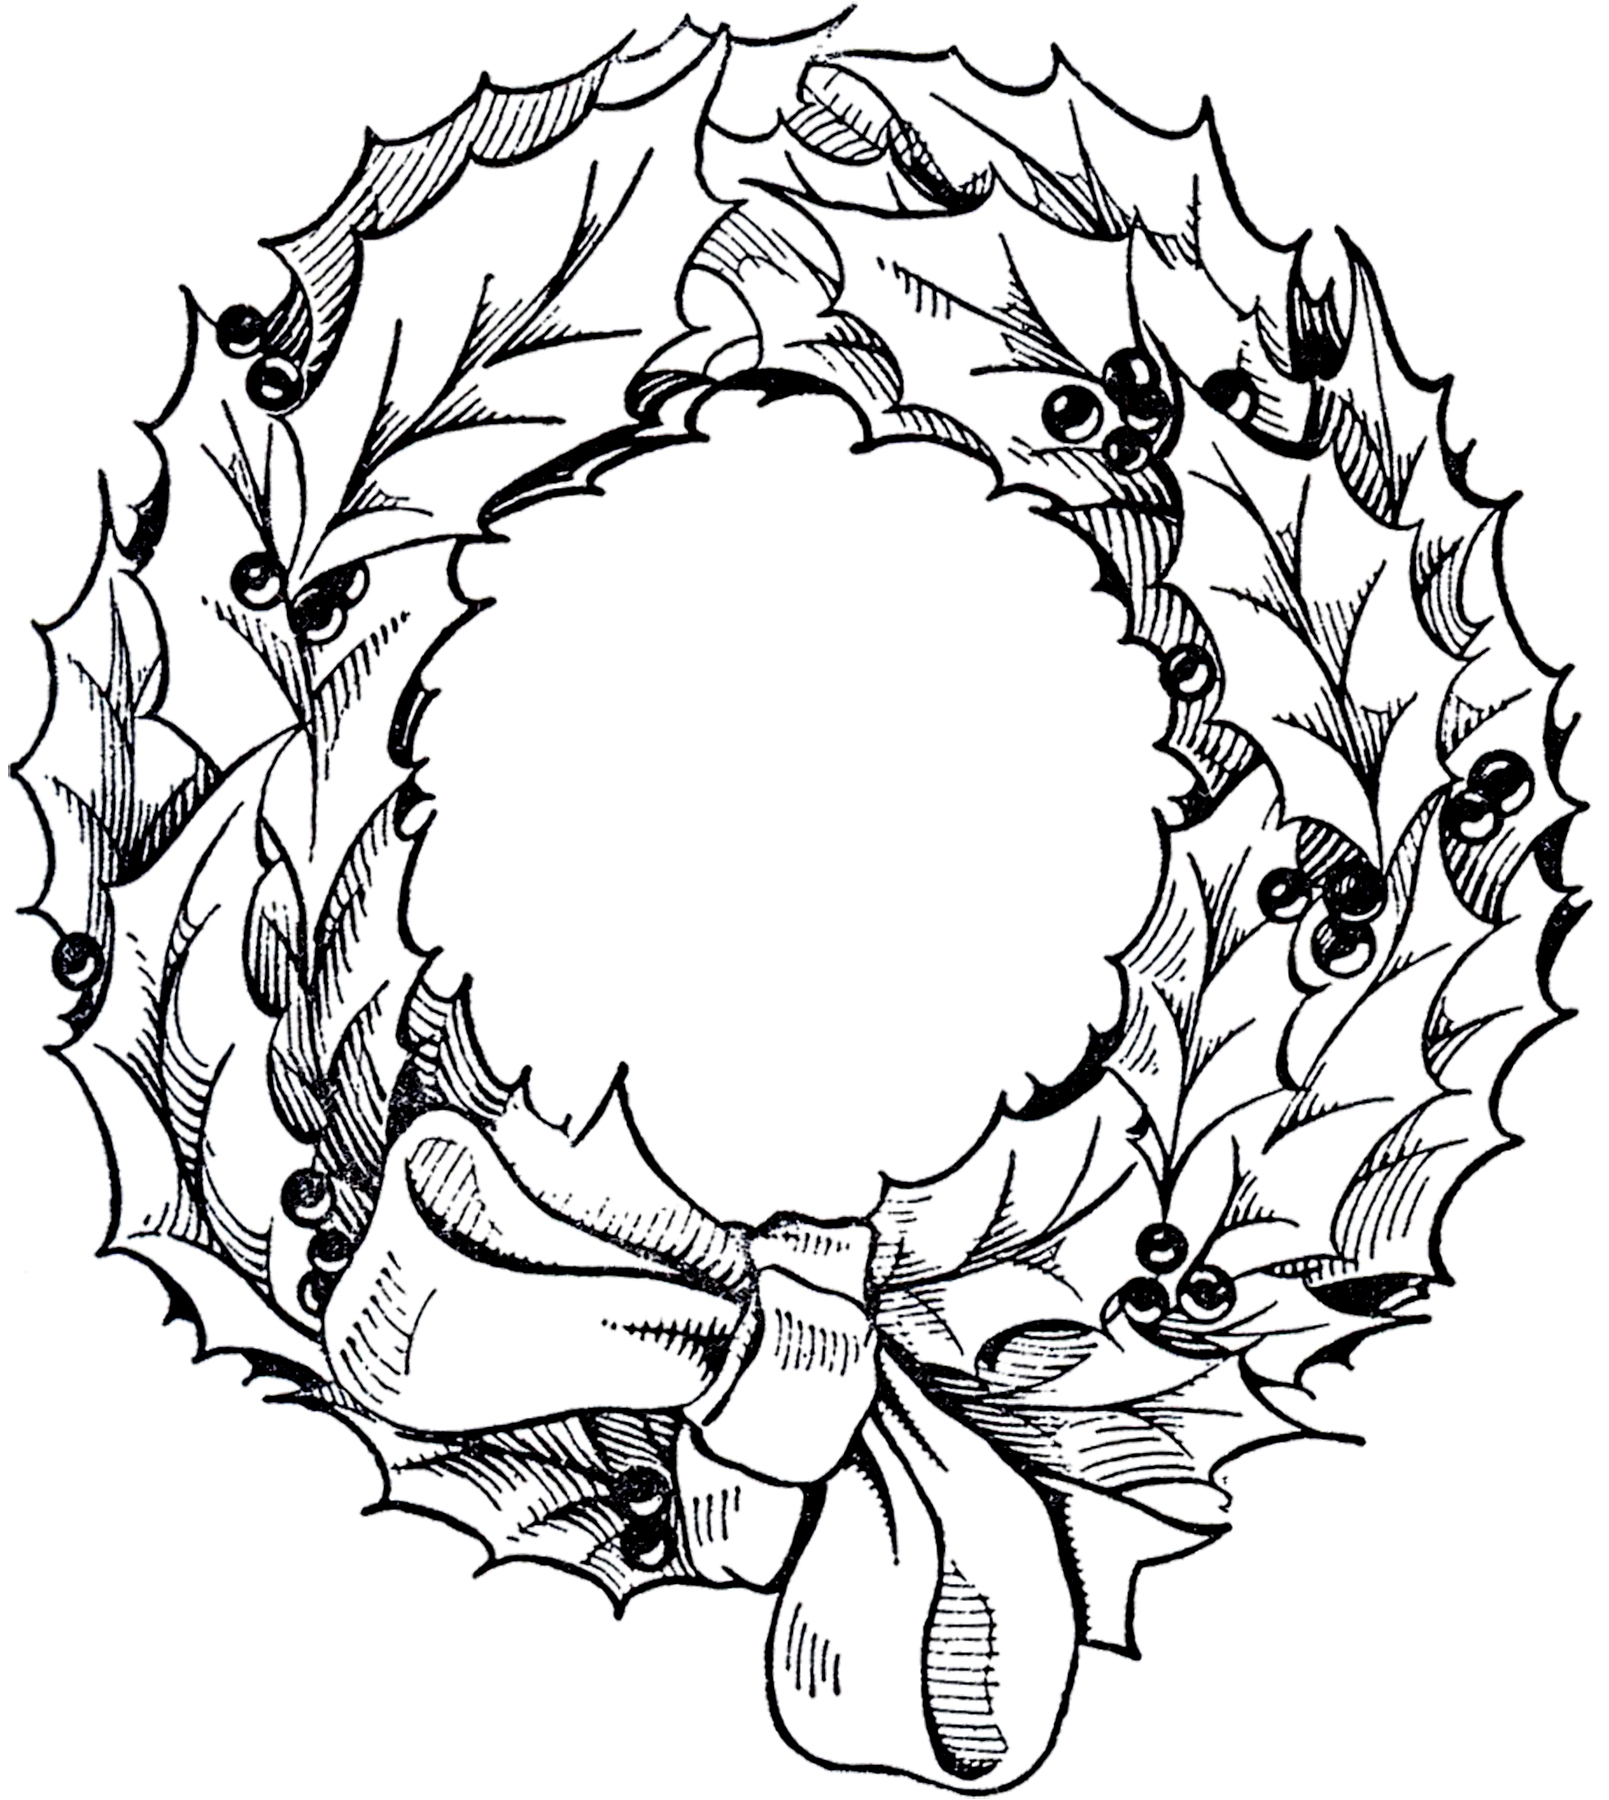 Vintage Christmas Wreath Graphic